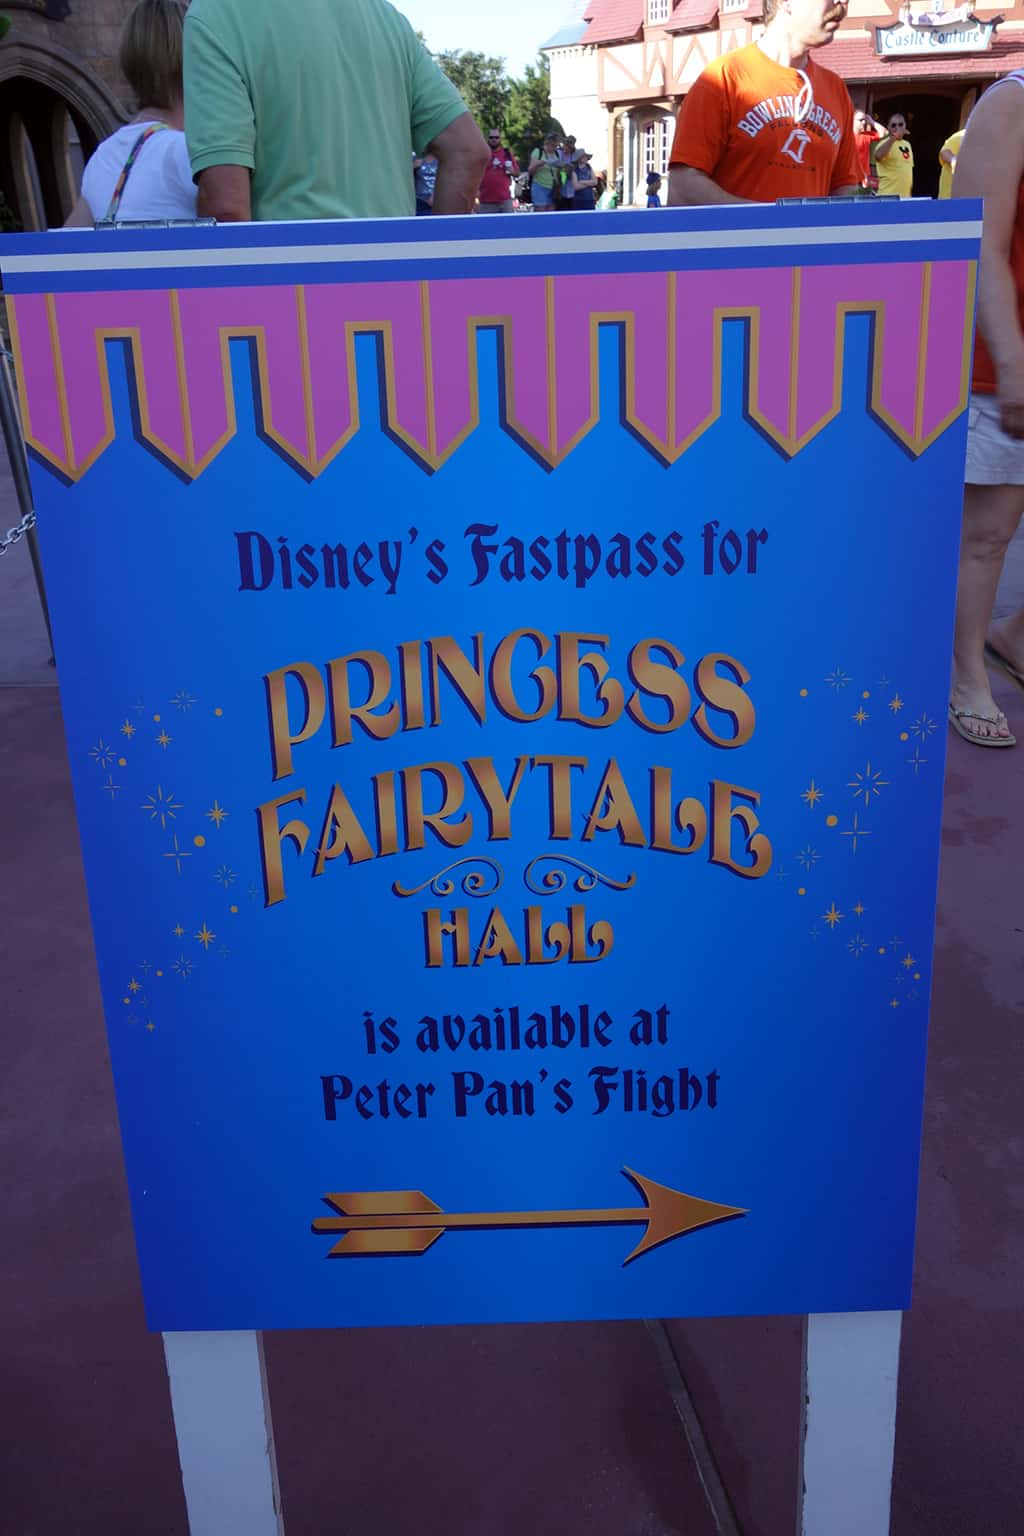 There's a sign right in front of Fairytale Hall directing you to the Fastpass location. It uses TWO of the Peter Pan's Flight Fastpass machines.